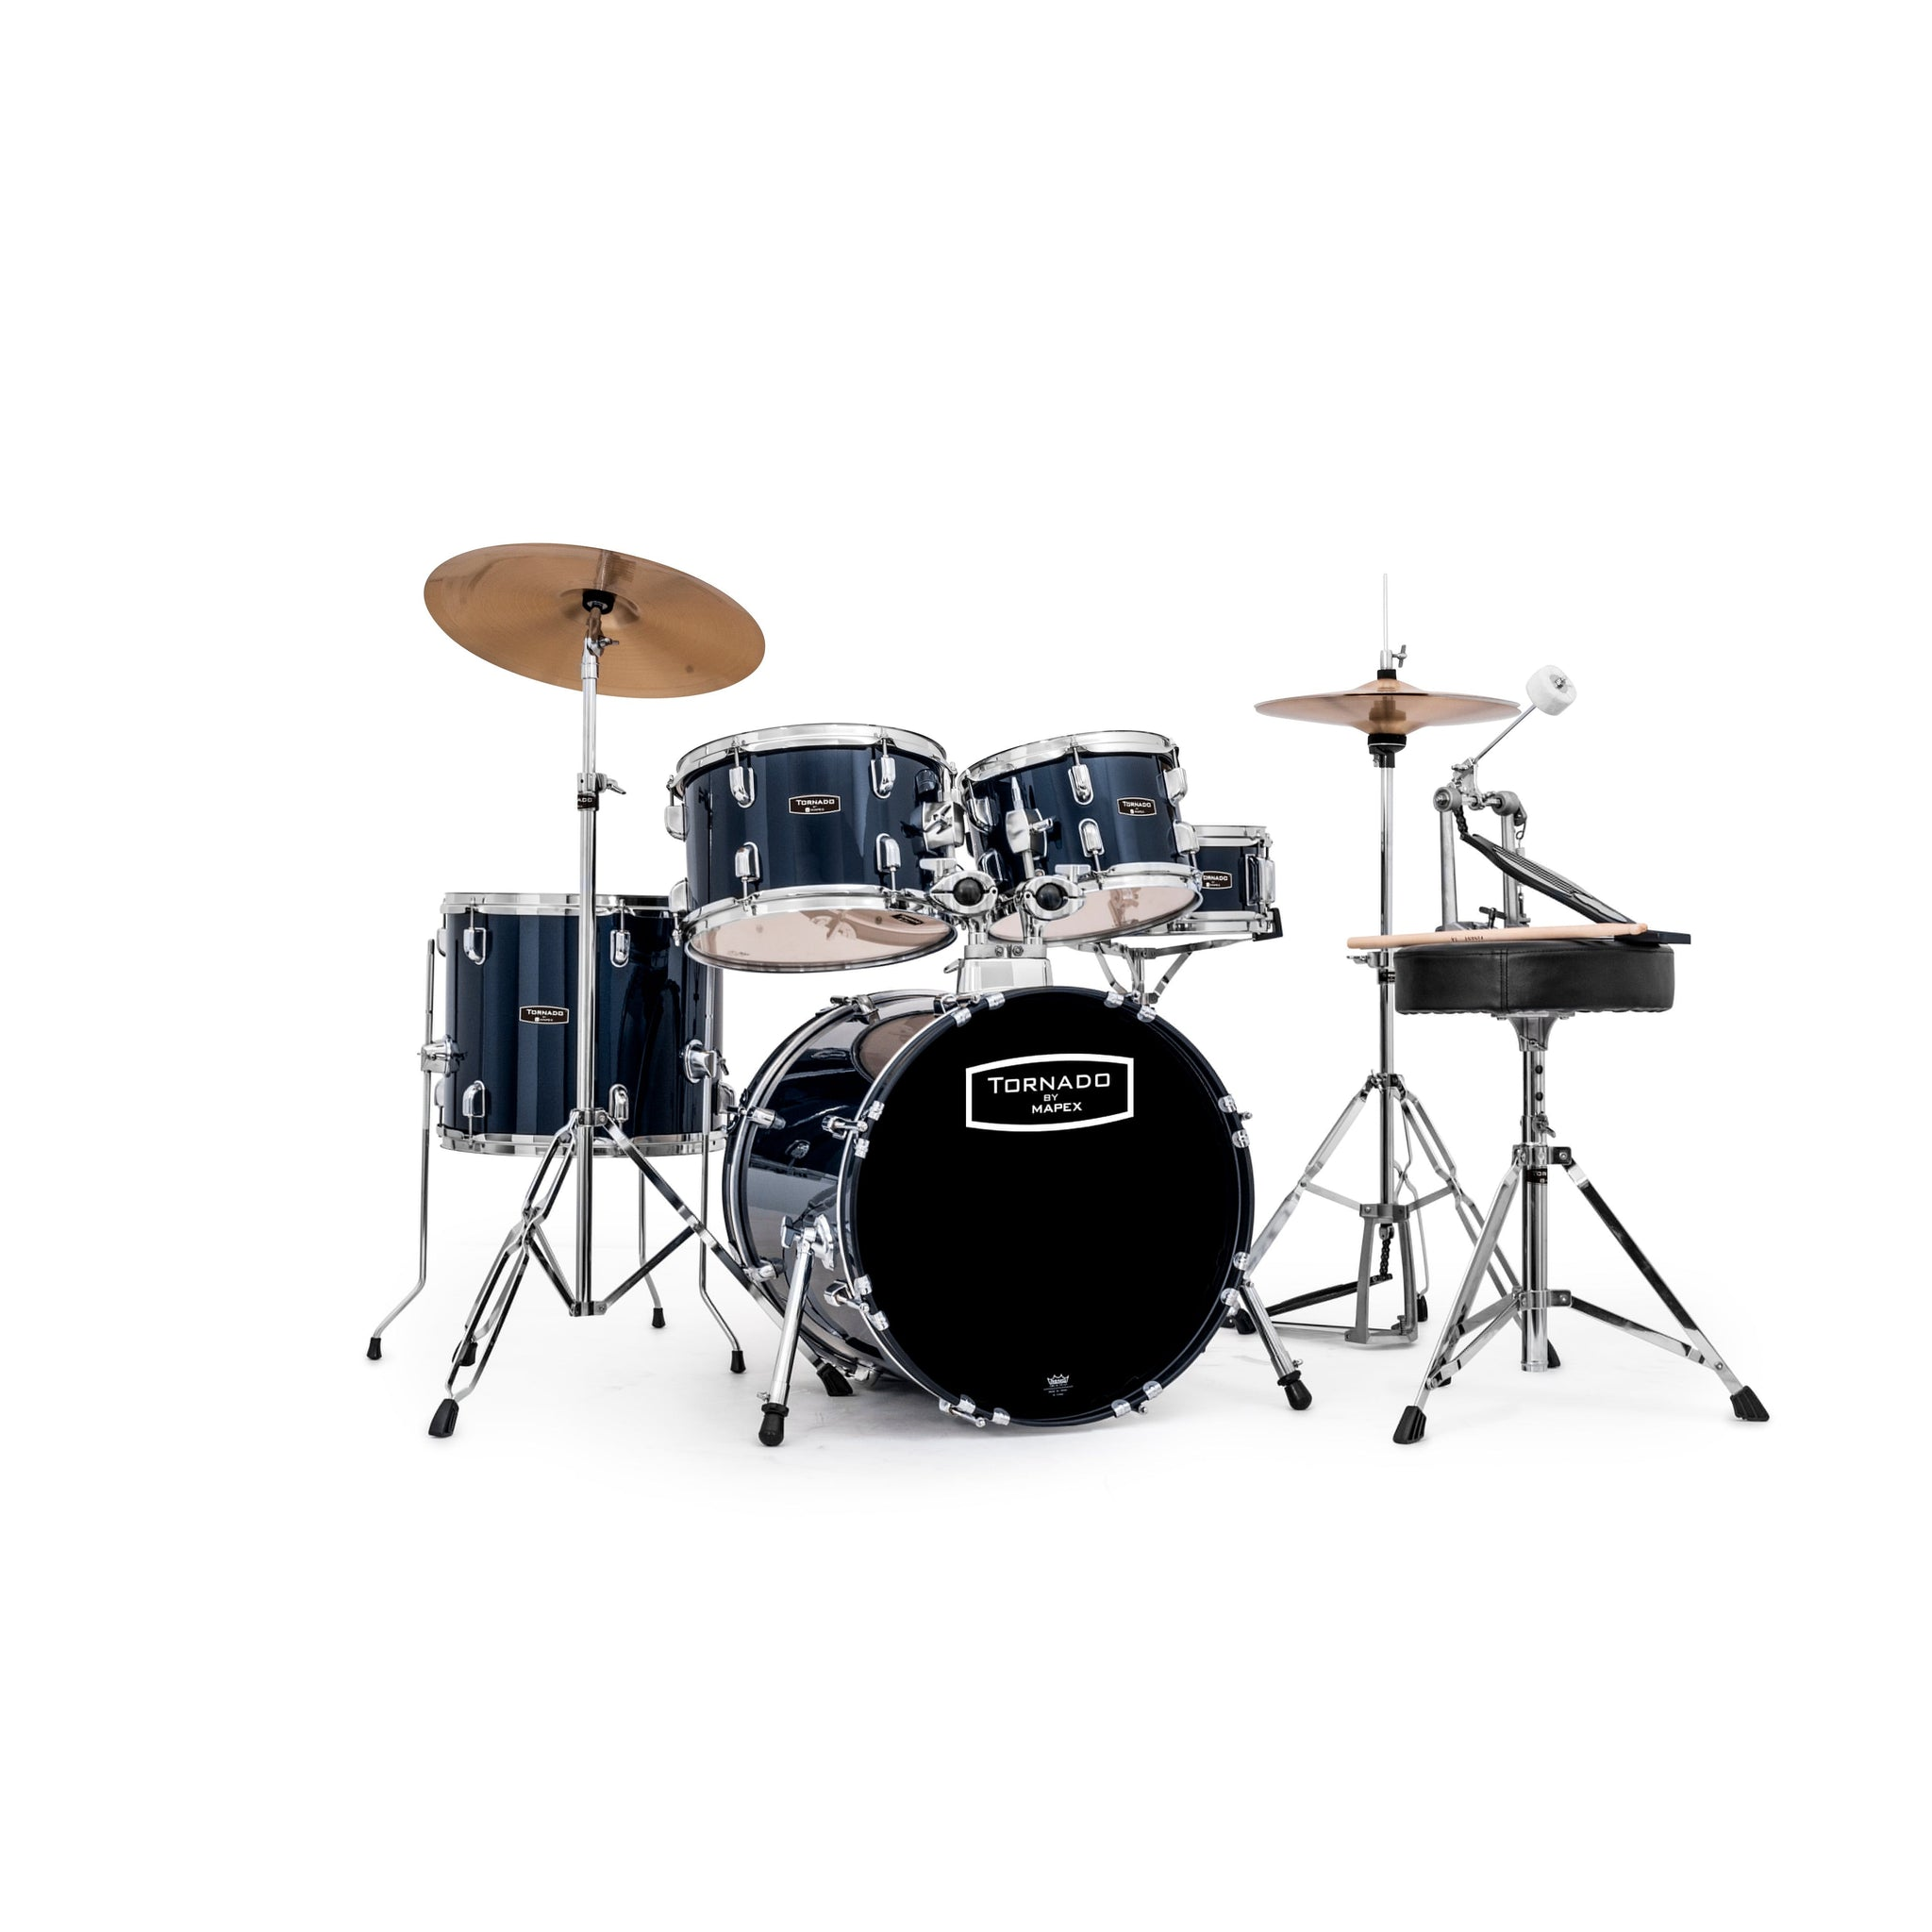 Mapex Tornado 22 Inch Rock Fusion Drum Kit (Series 3)